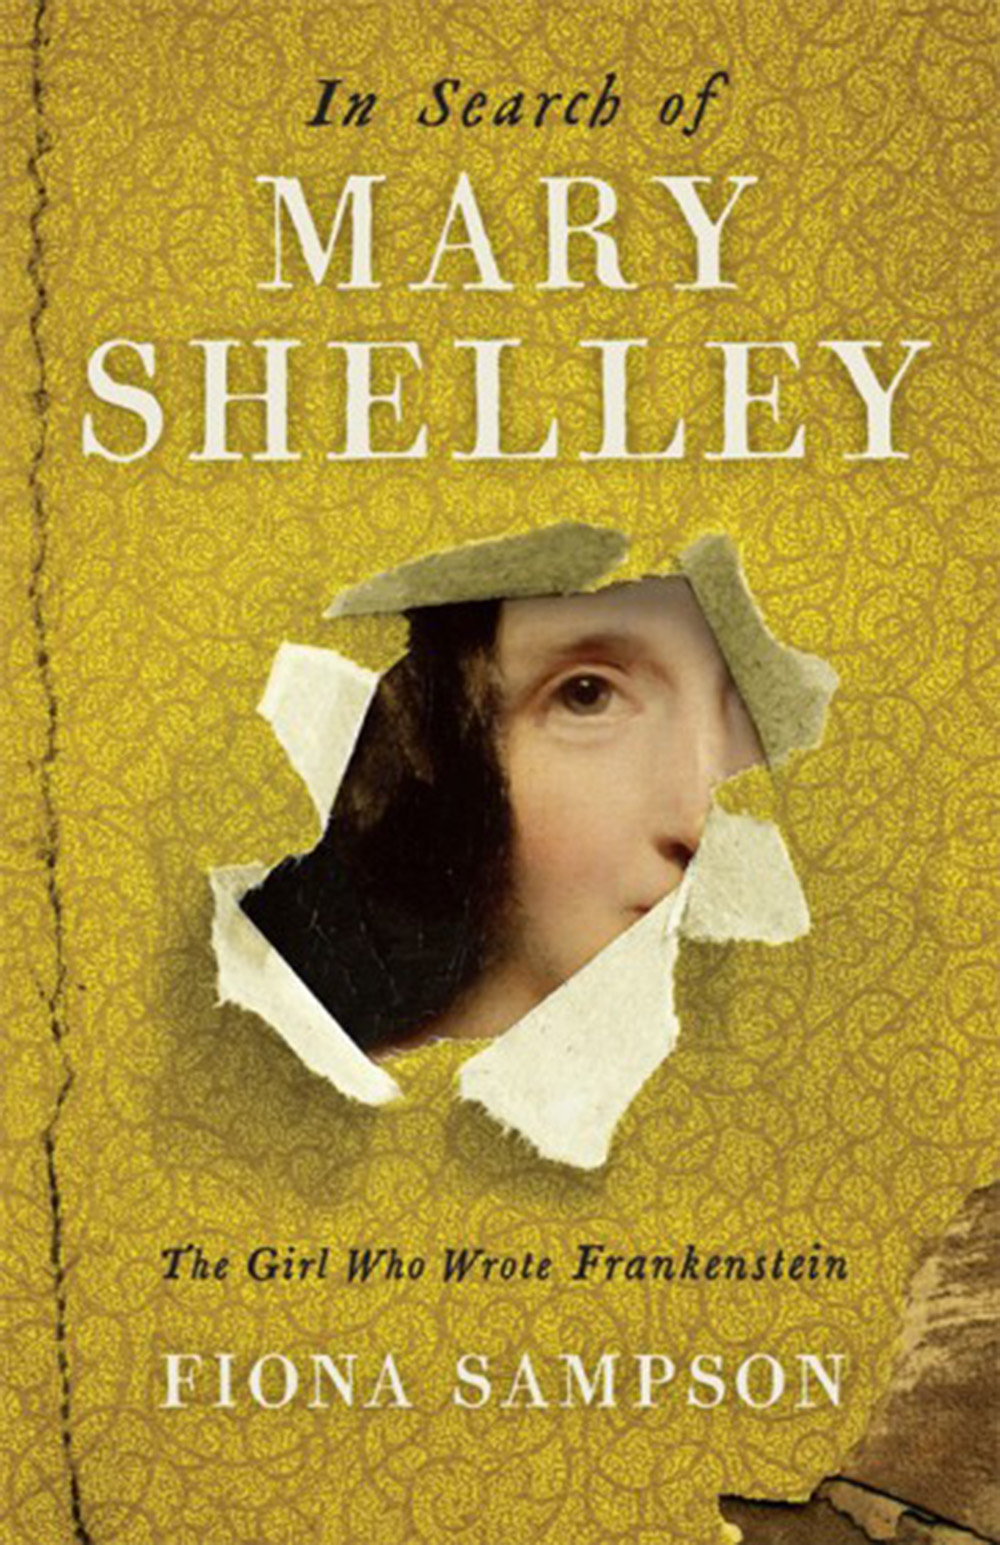 """In Search of Mary Shelley"" by Fiona Sampson. Profile Books."